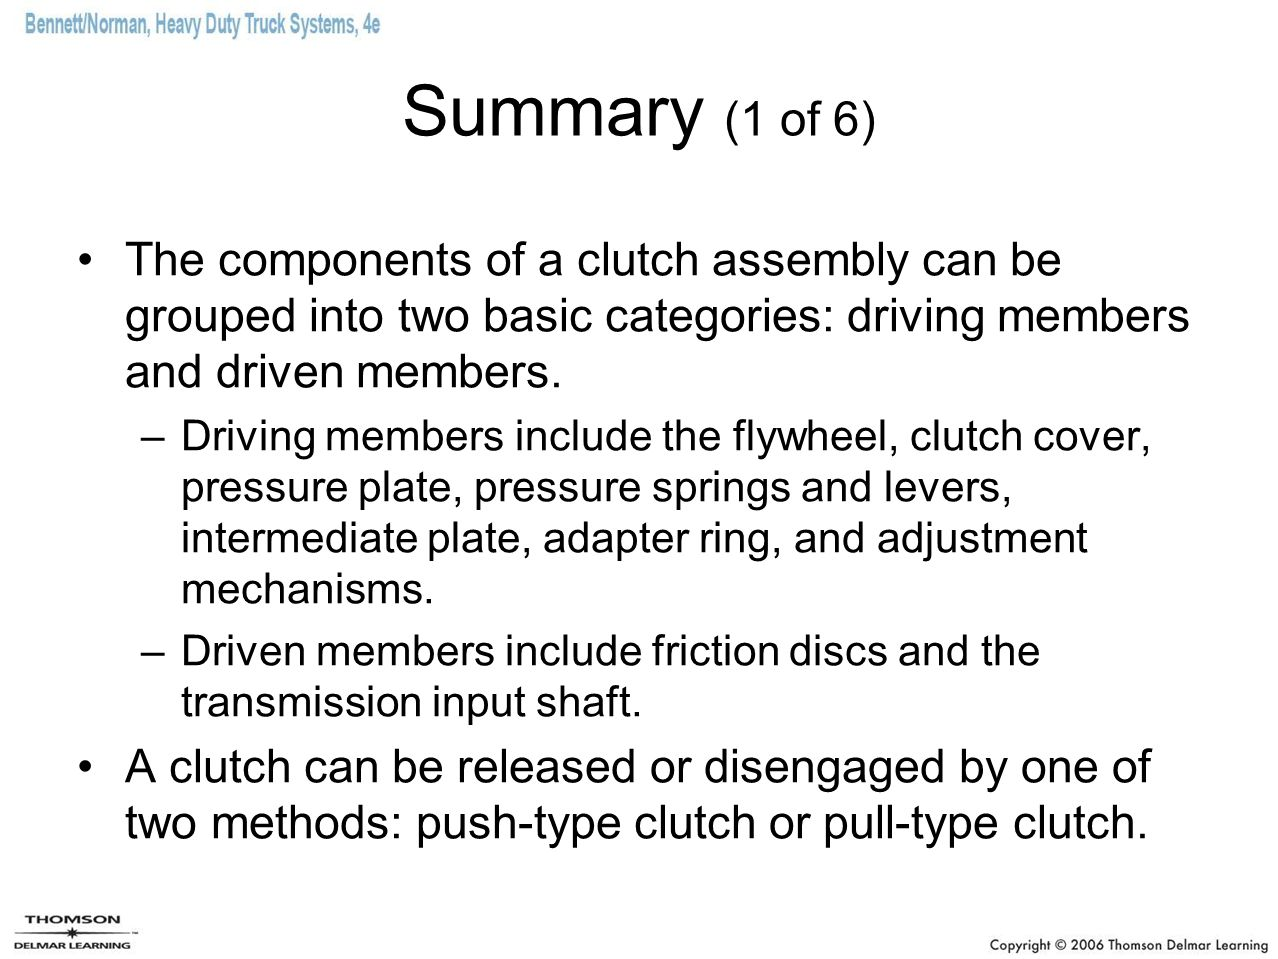 Summary (1 of 6) The components of a clutch assembly can be grouped into two basic categories: driving members and driven members.